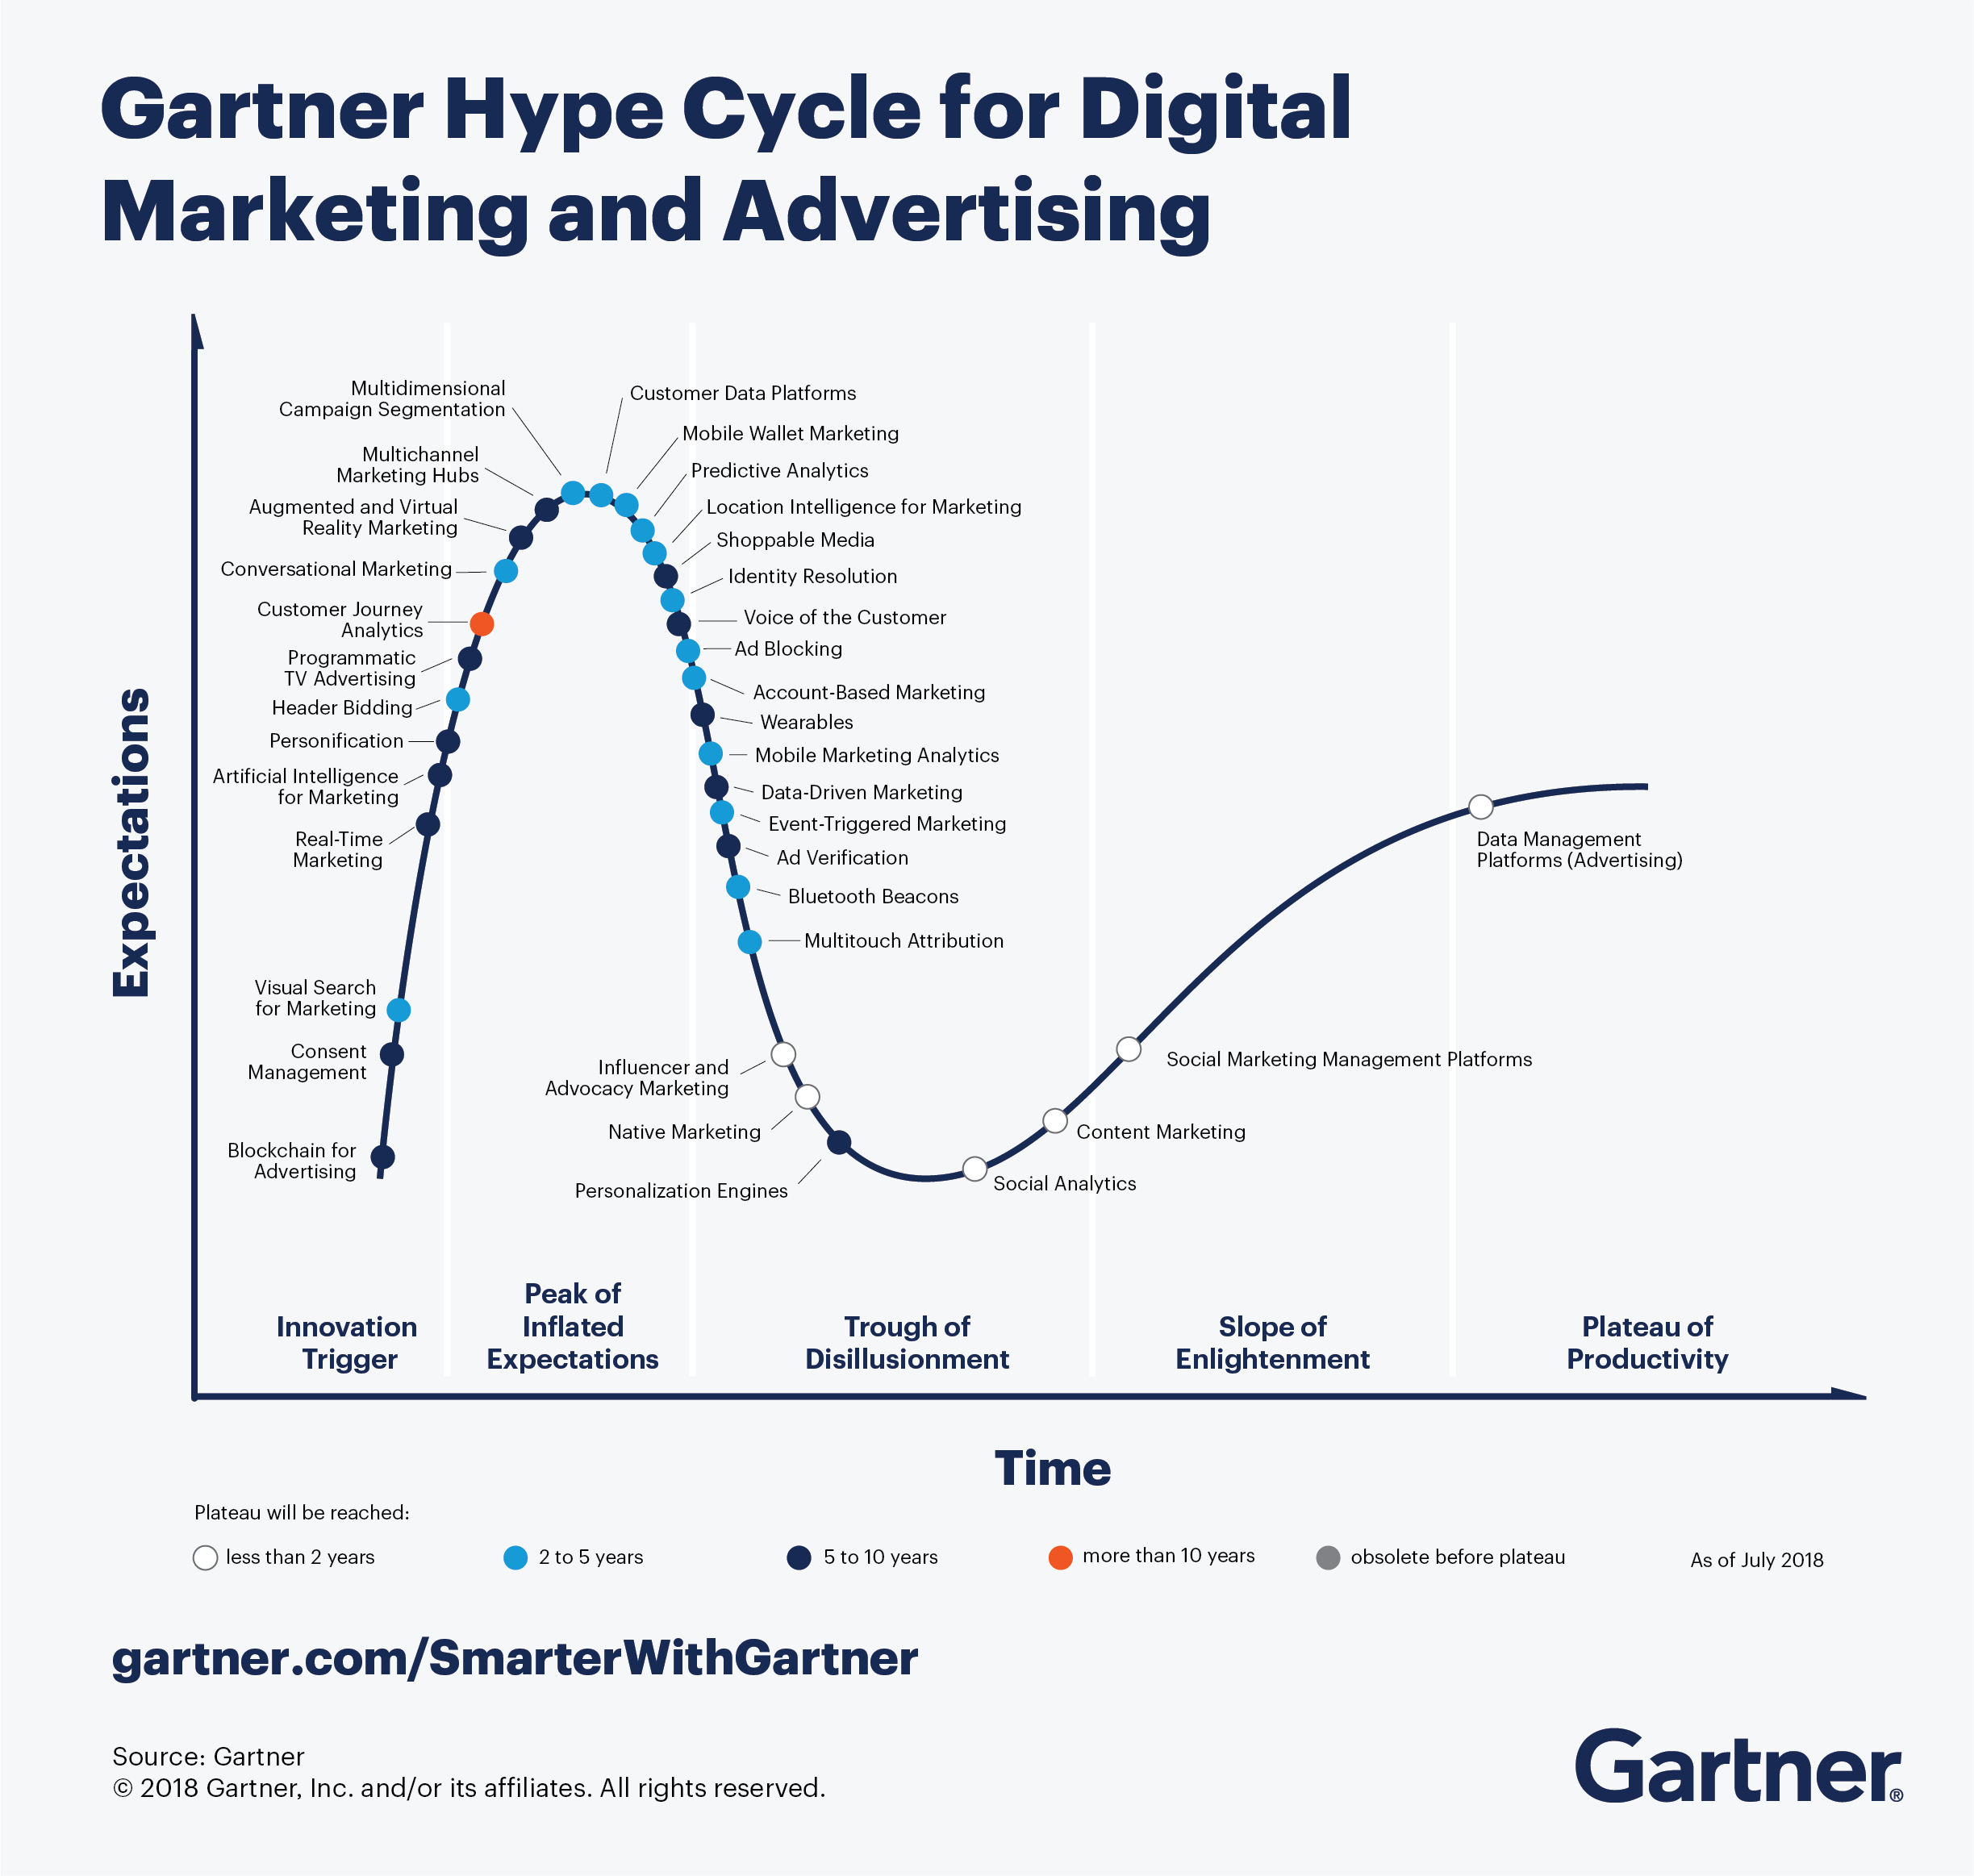 Latest Gartner Hype Cycles | Smart Insights